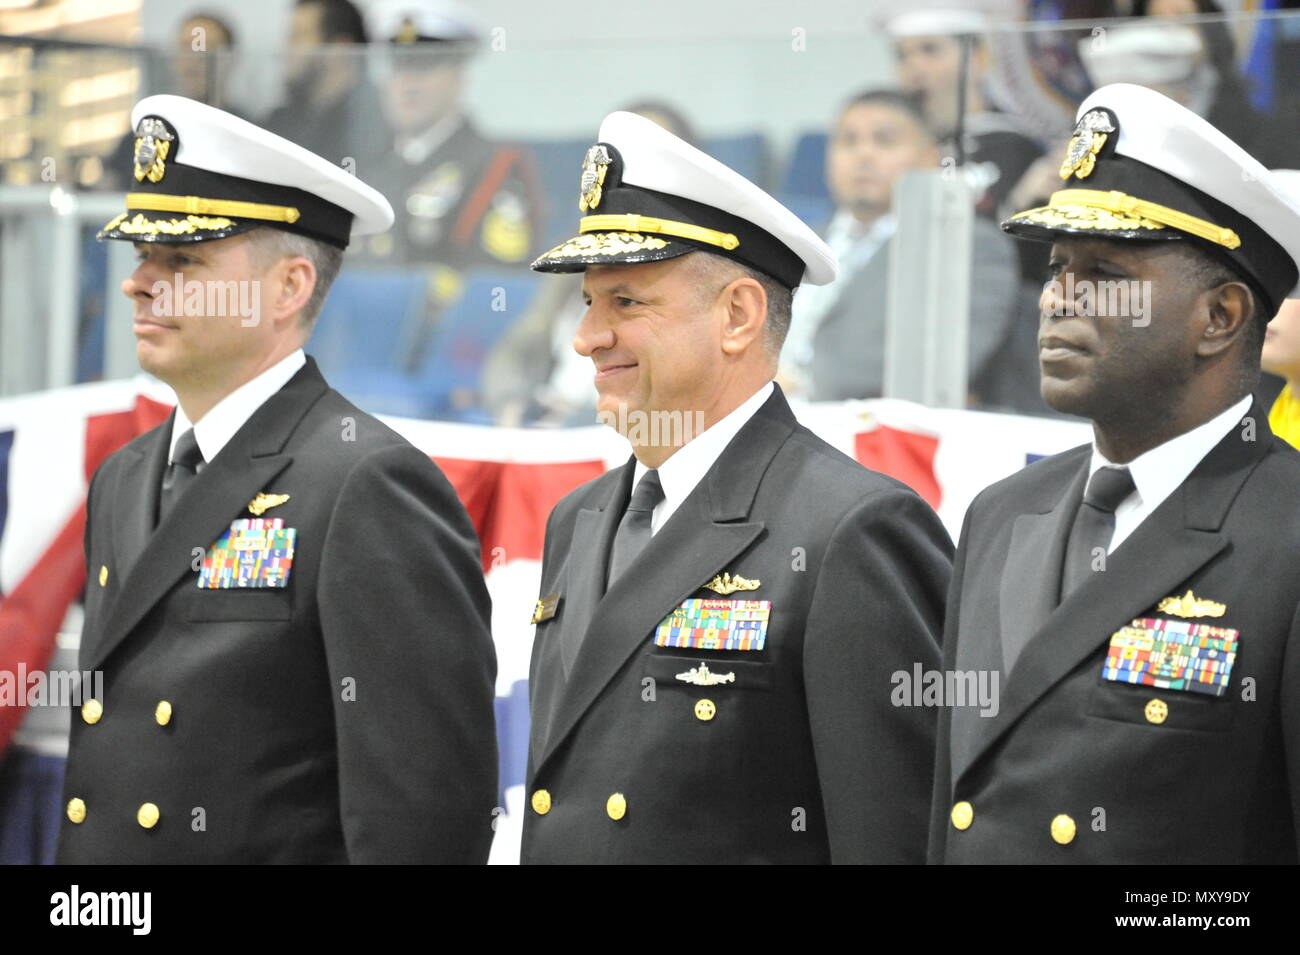 161216-N-CM124-287  GREAT LAKES, Ill. (Dec. 16, 2016) Chief of Naval Personnel Robert P. Burke center, joins Capt. Mike Garrick, commanding officer, Recruit Training Command, left, and Rear Adm. Stephen C. Evans, commander, Naval Service Training Command, on the drill deck to congratulate recruit award winners at the Pass-In-Review ceremony Dec. 16 at Midway Ceremony Drill Hall, Recruit Training Command. Burke served as the ceremony's reviewing officer where just over 940 recruits graduated from the Navy's only boot camp.  (U.S. Navy photo by Susan Krawczyk/Released). - Stock Image